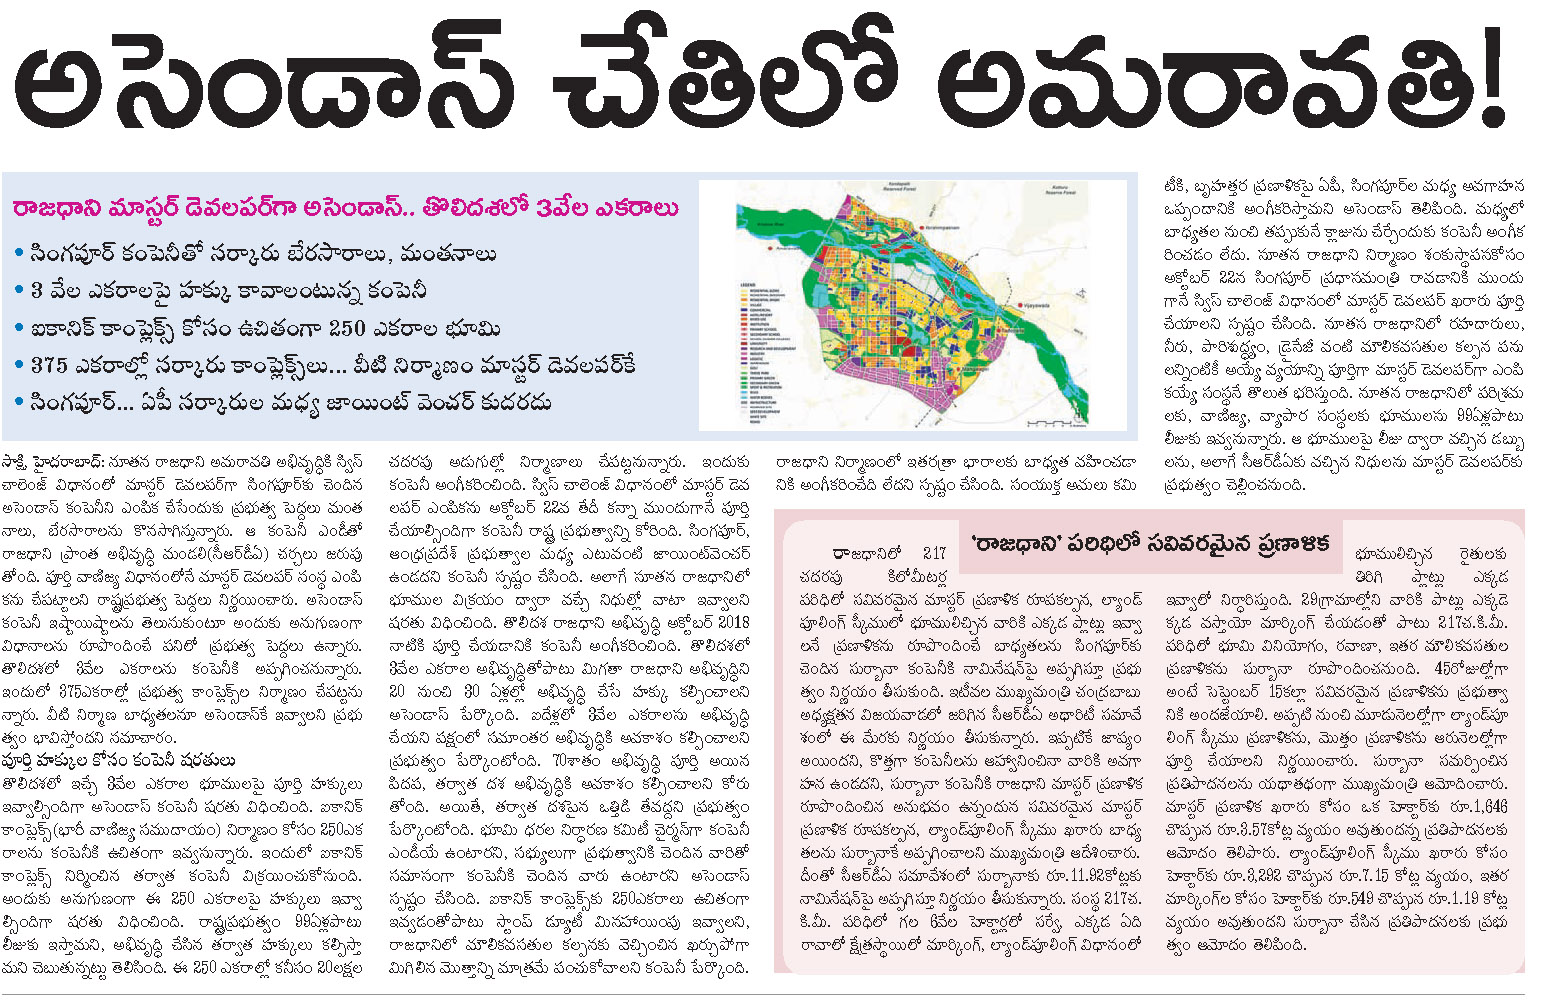 Amaravathi Development by Ascendas